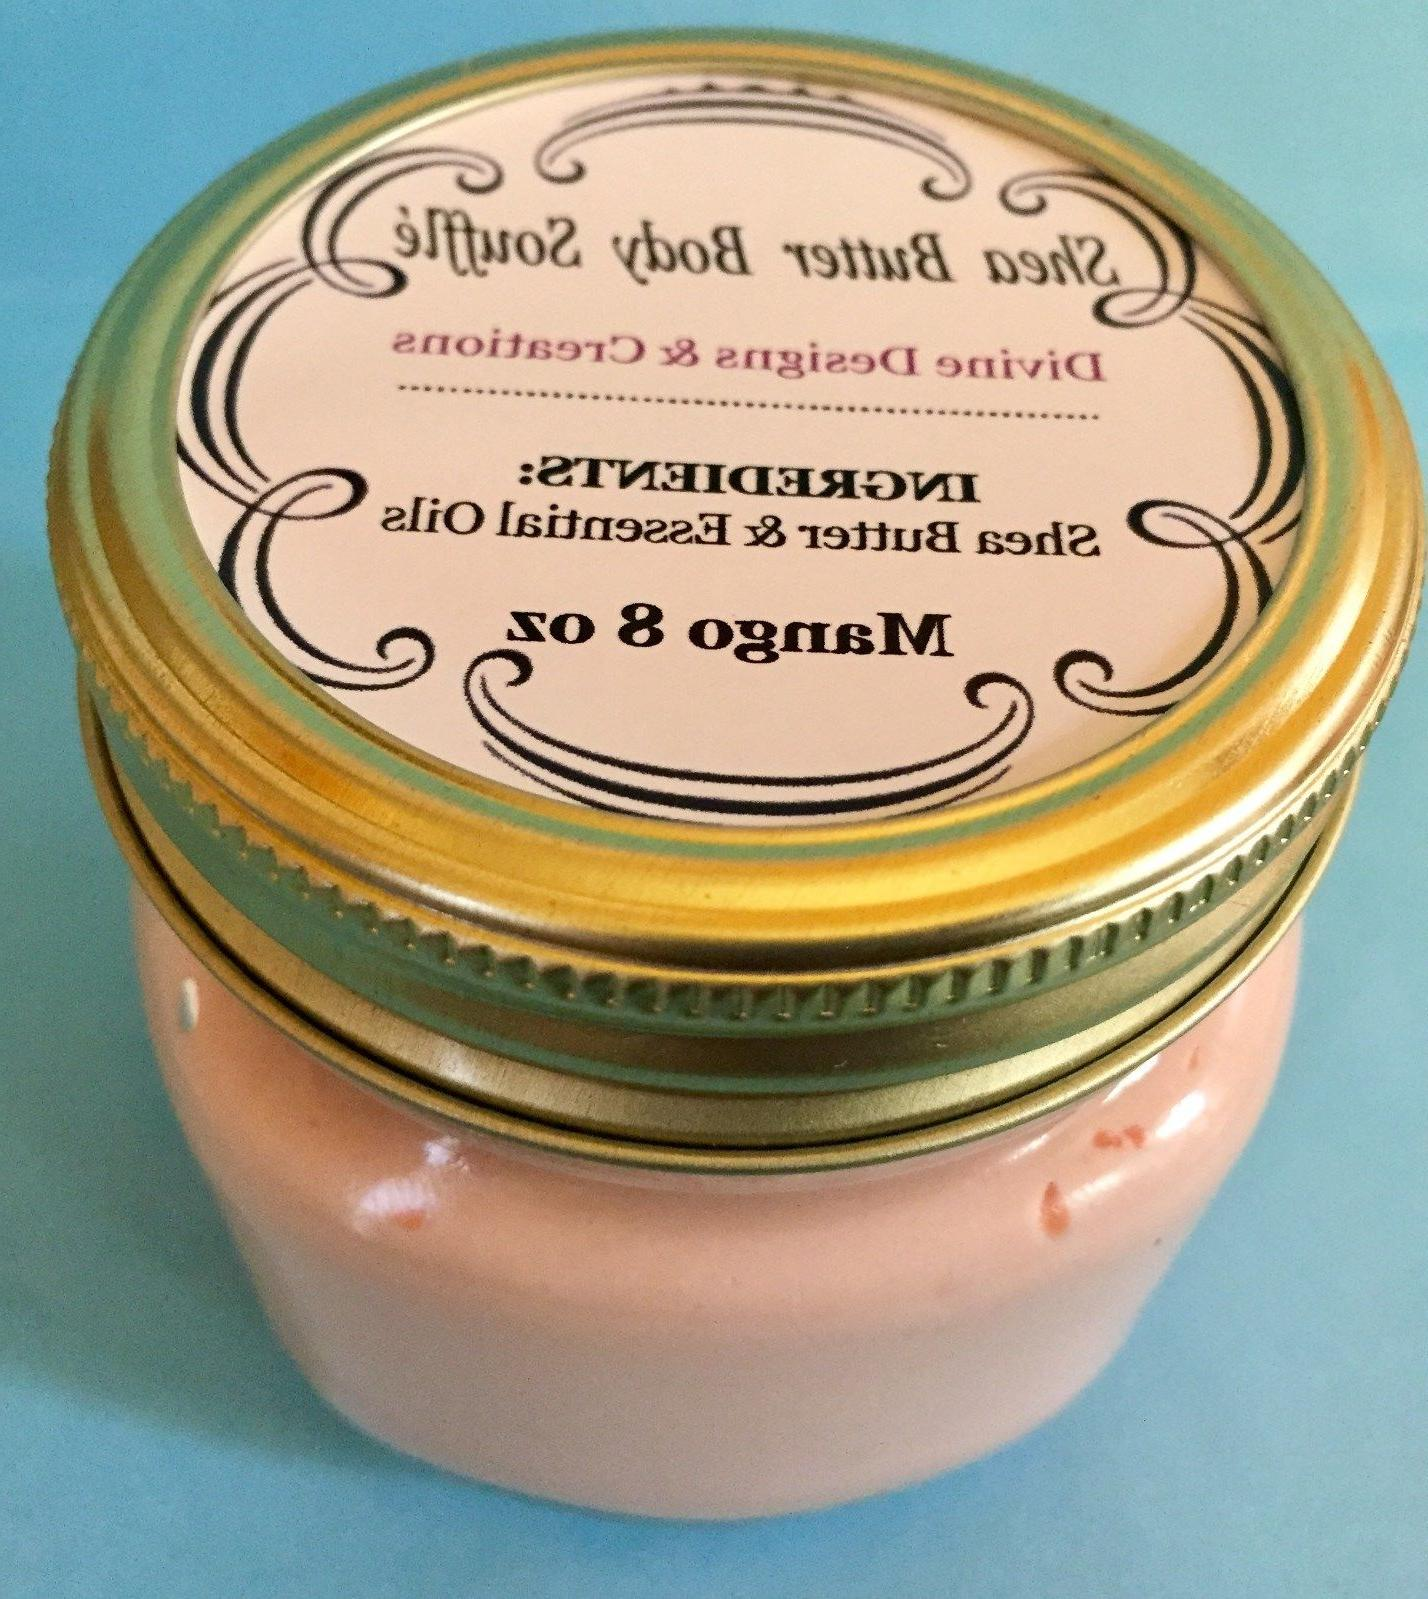 Whipped Body Souffle! Your